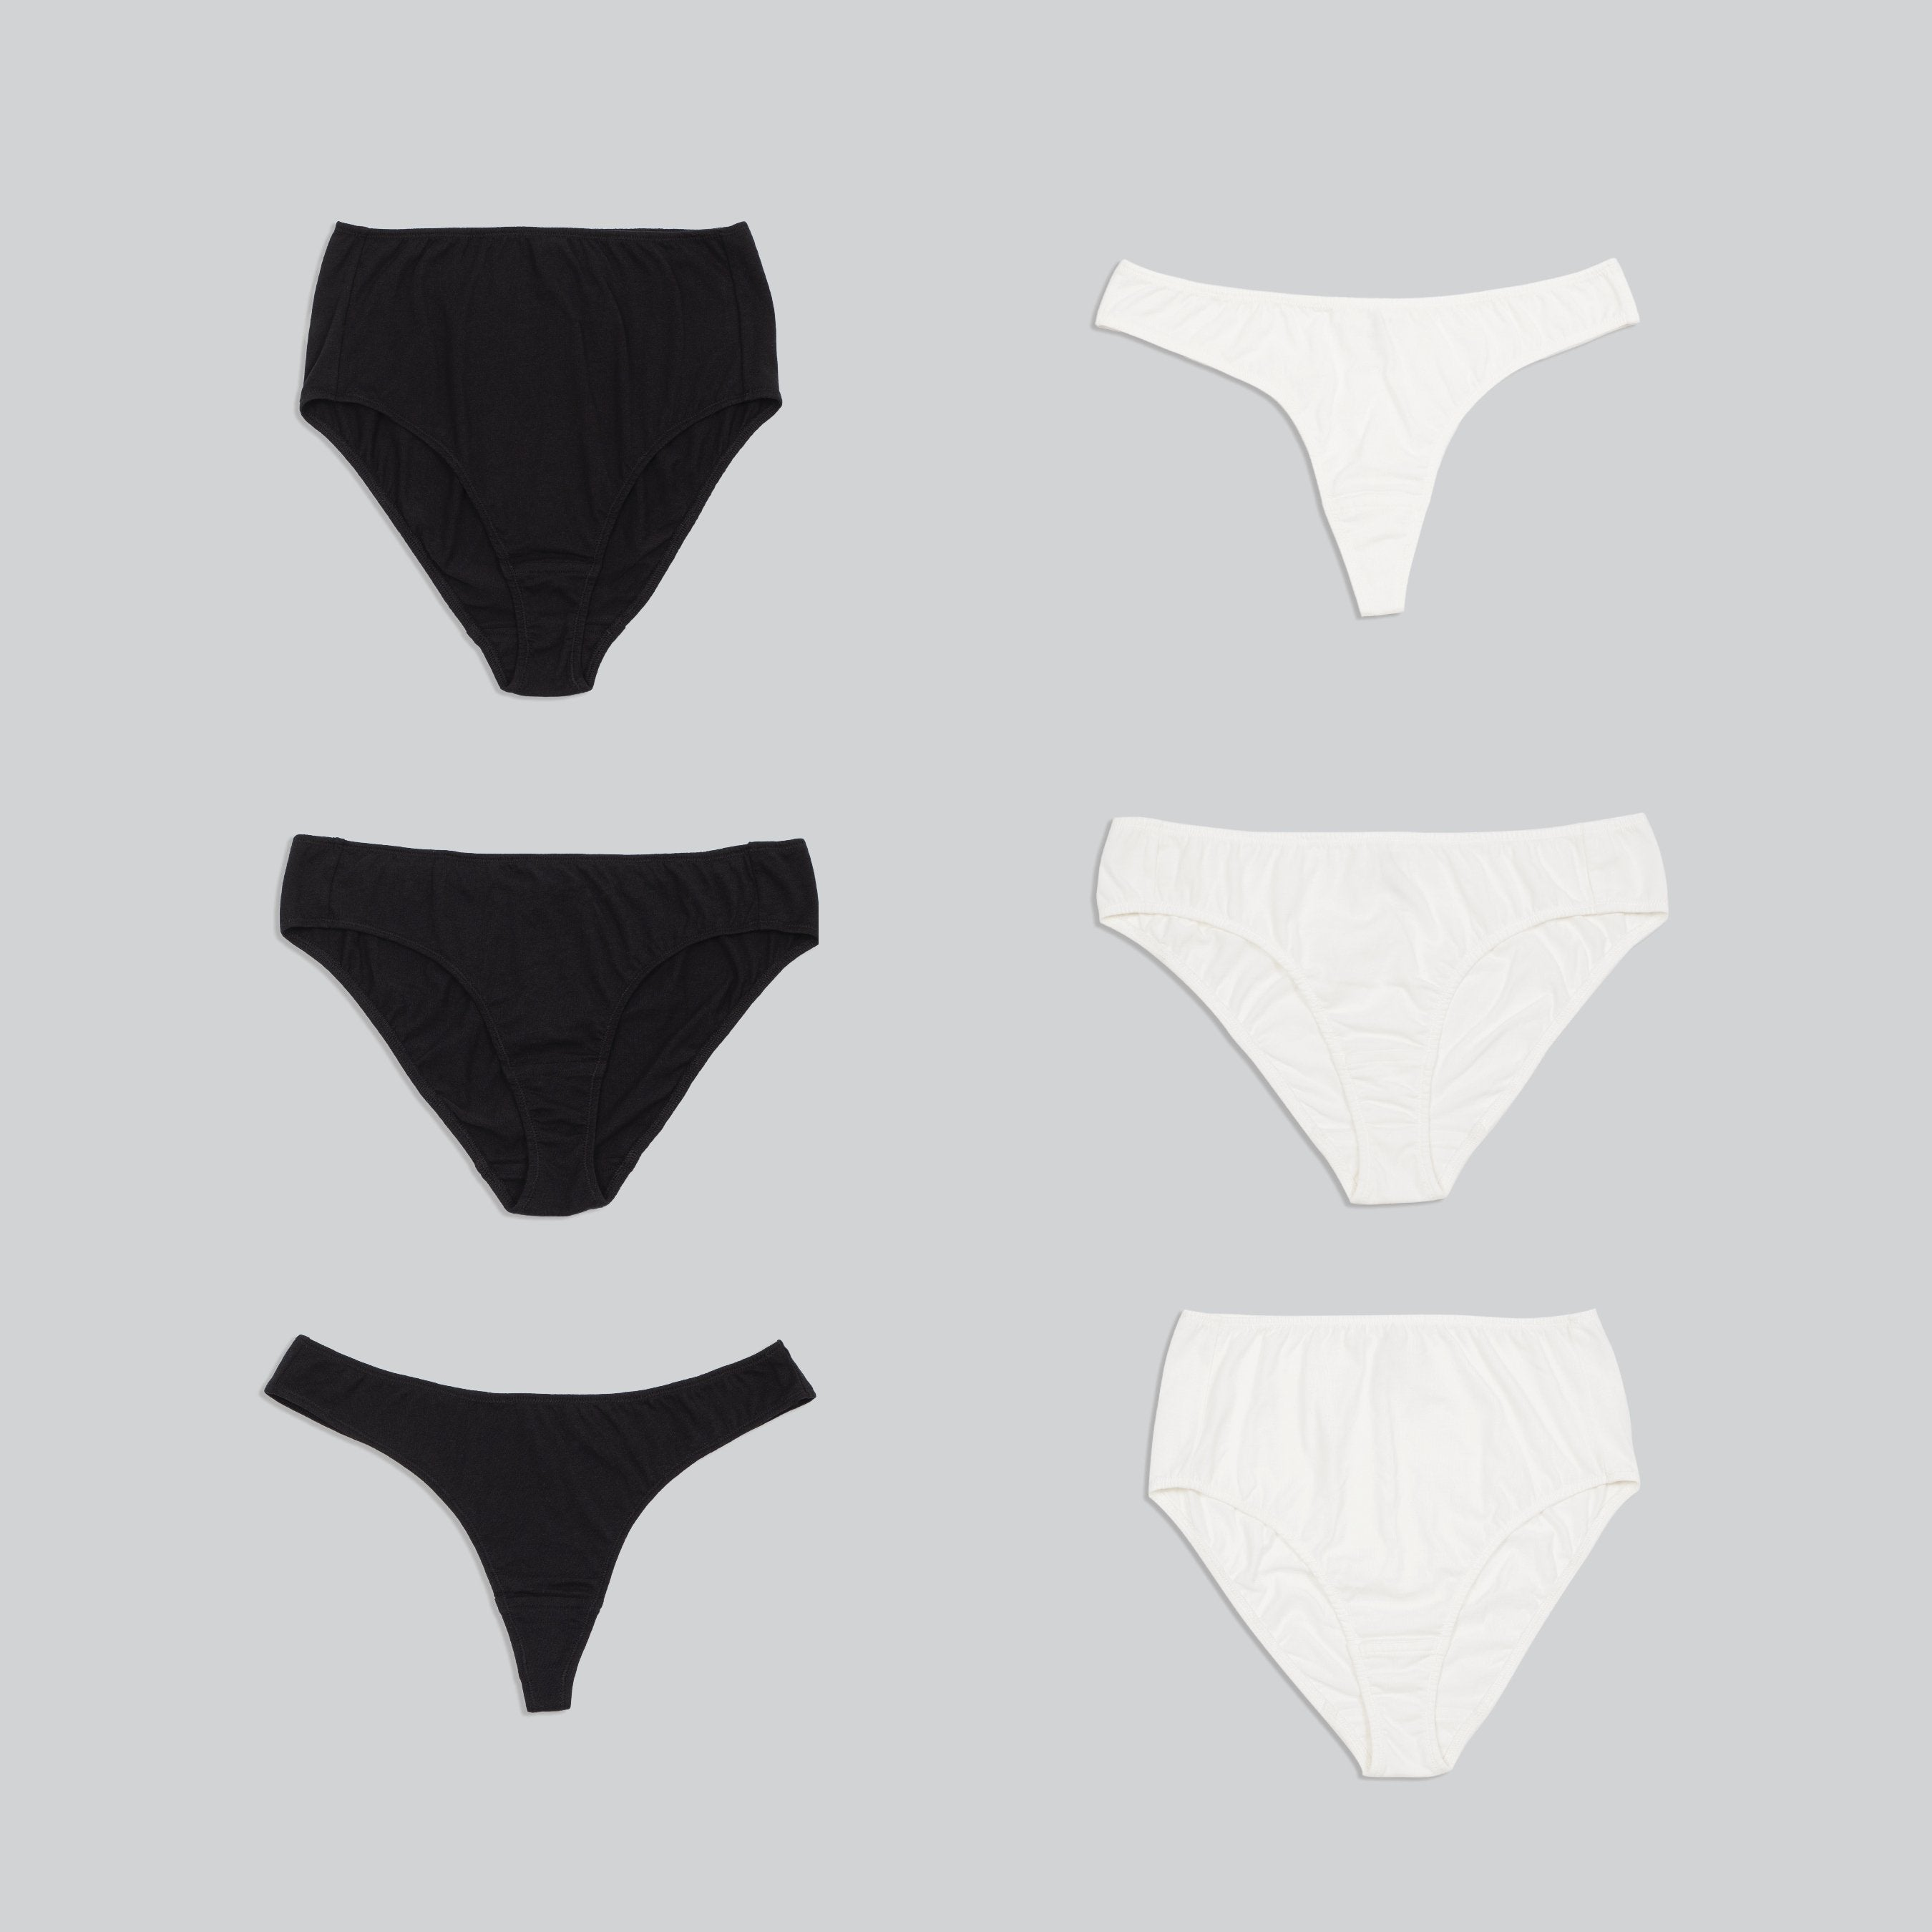 three styles of organic cotton underwear, high rise, bikini and thong in two colors - black and white